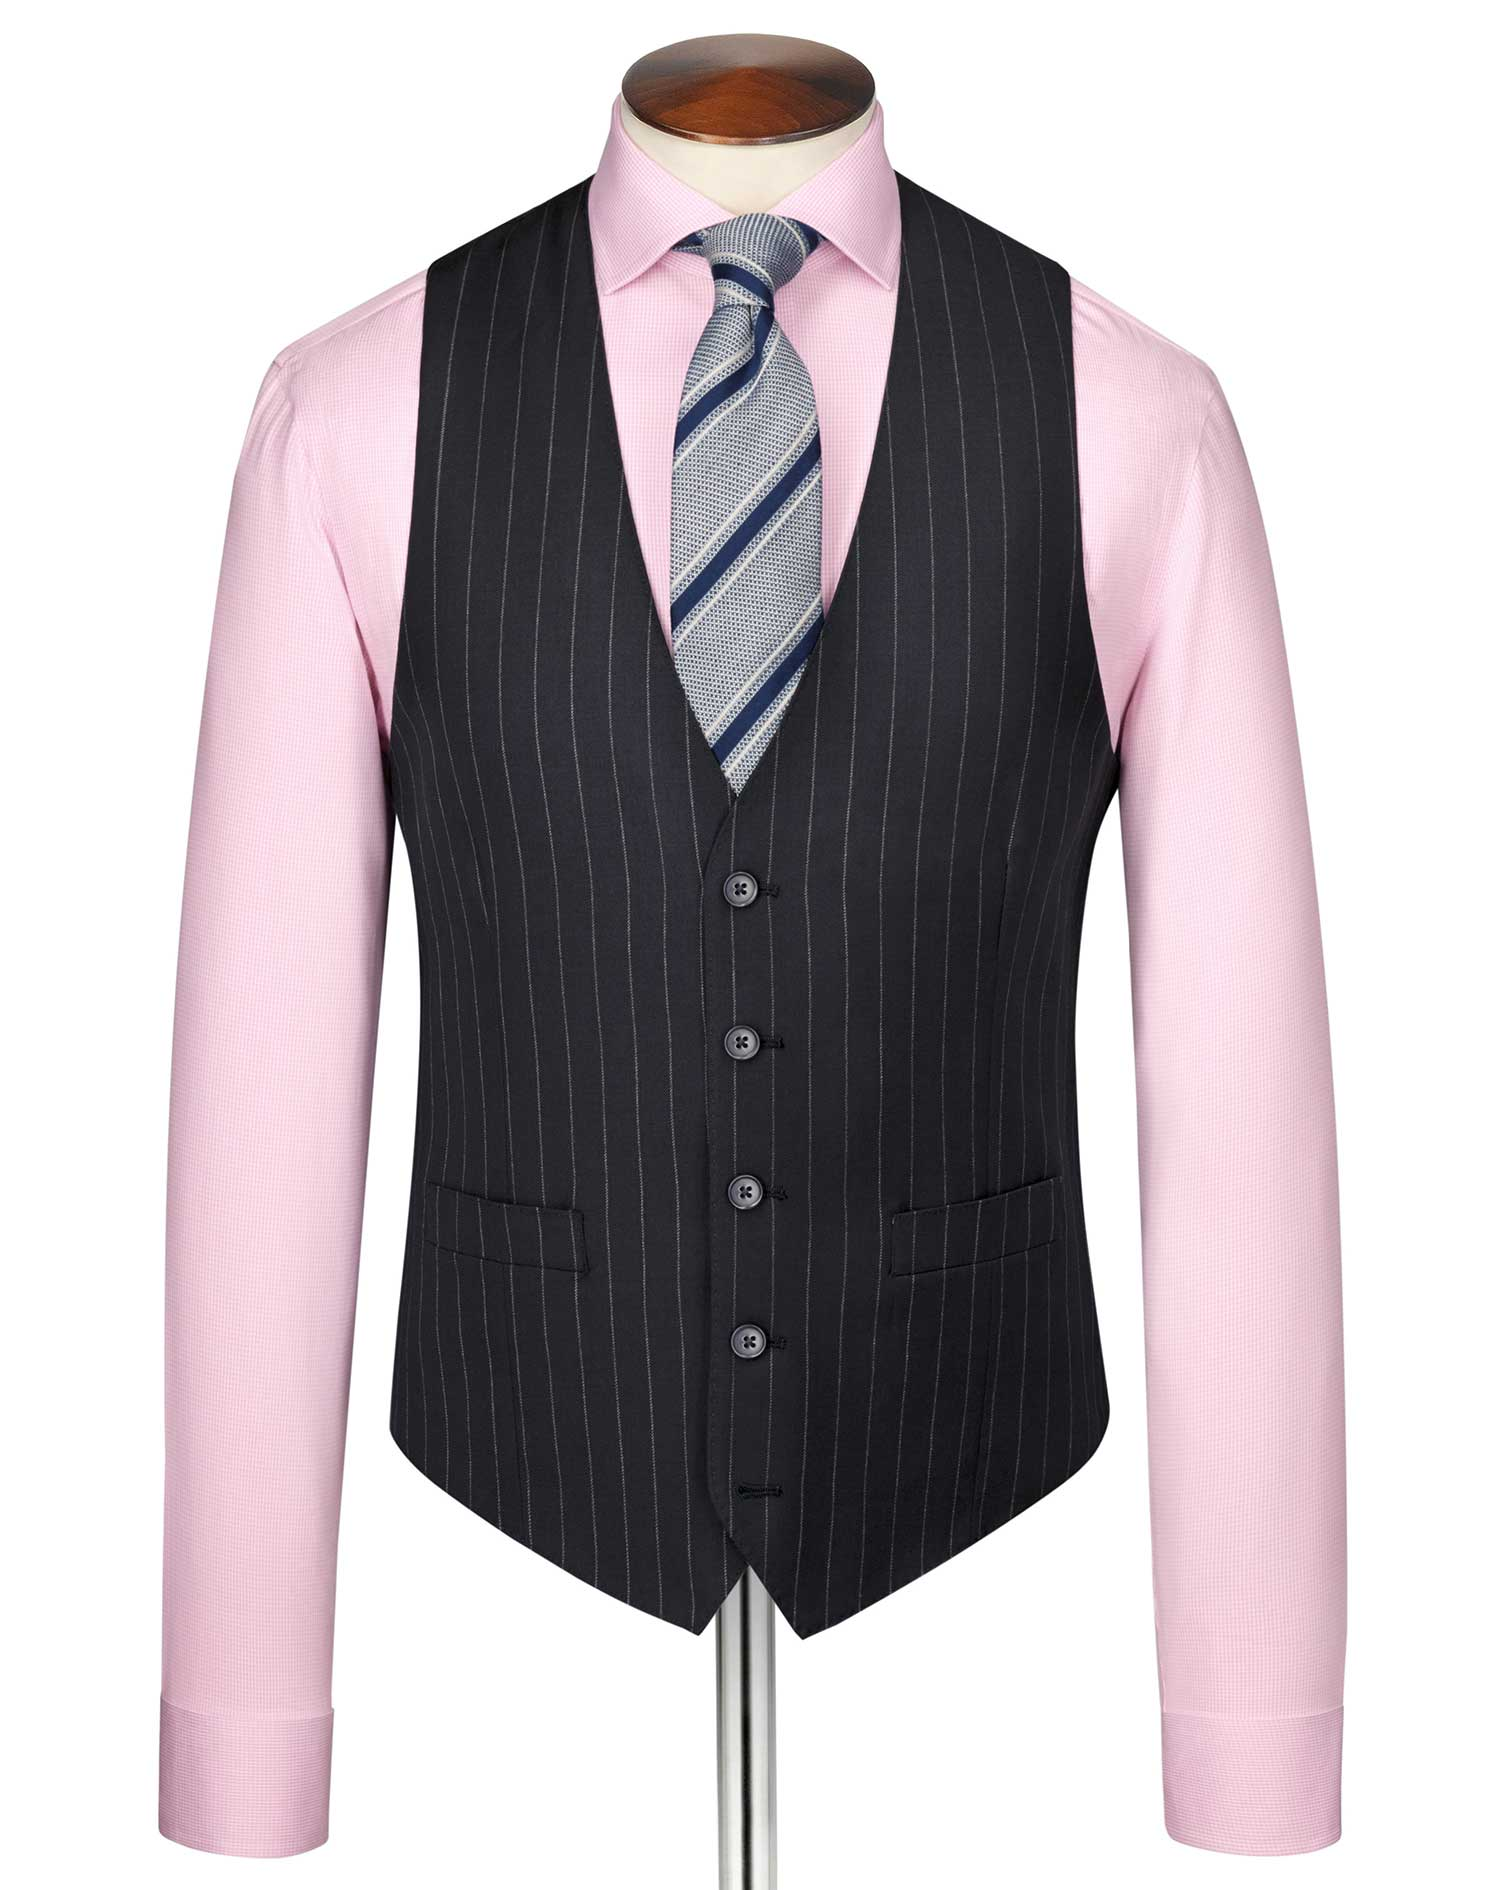 Navy Stripe Adjustable Fit Twill Business Suit Wool Waistcoat Size w48 by Charles Tyrwhitt